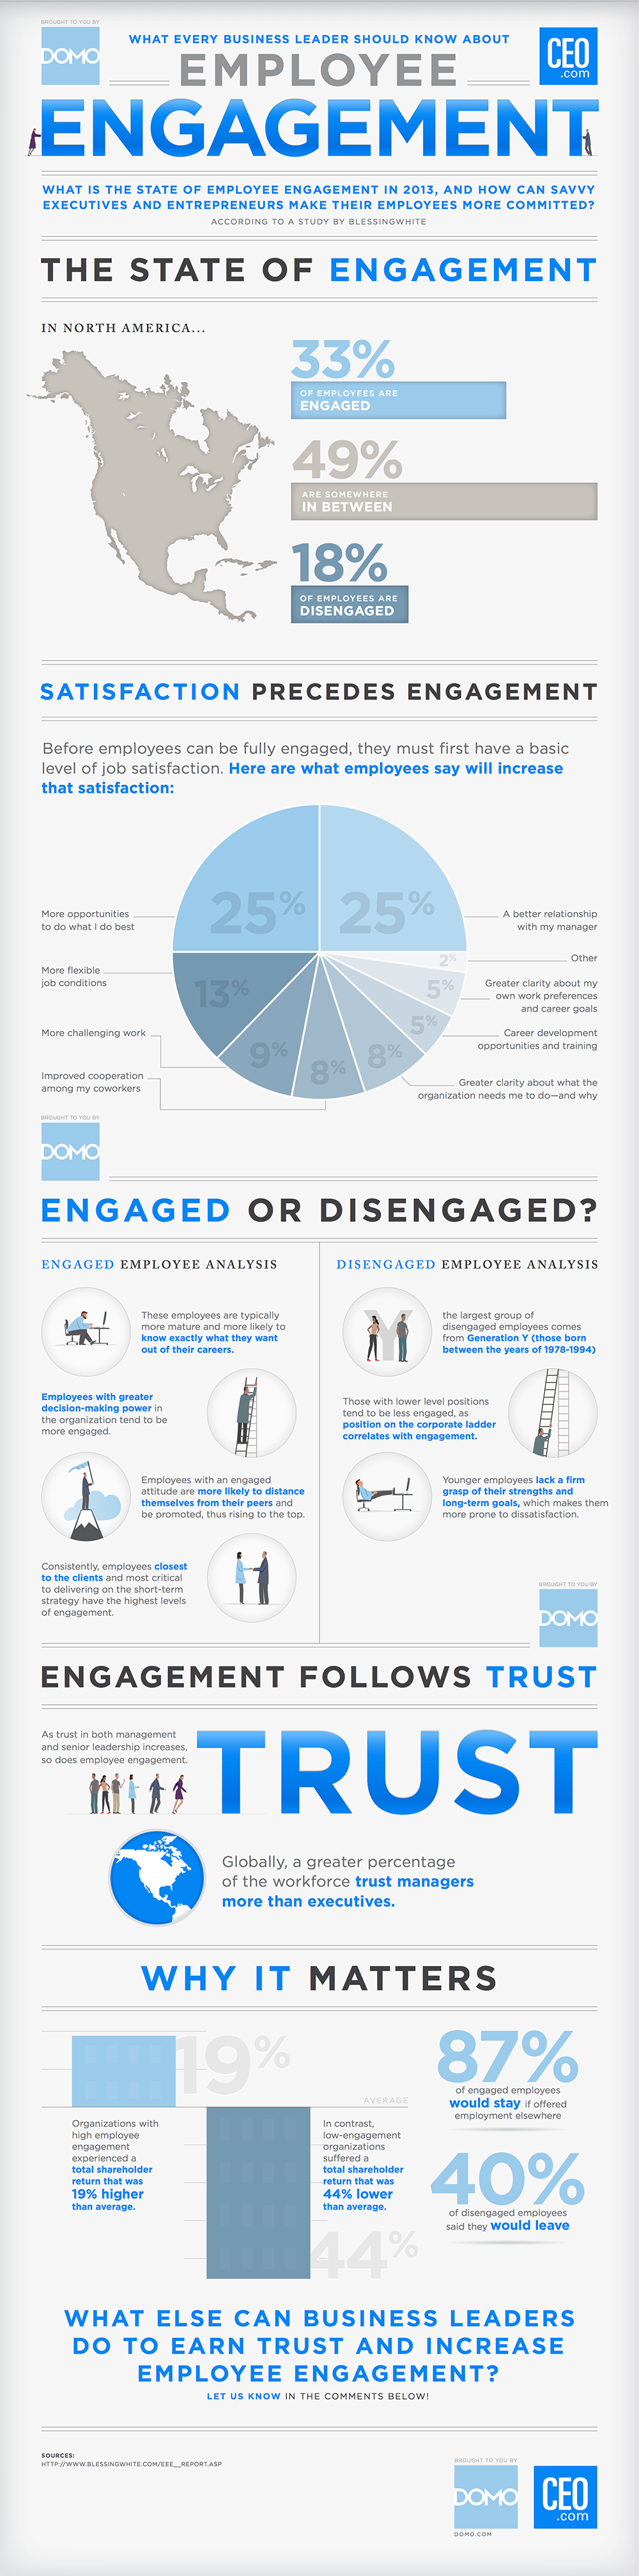 Employee-Engagement-Infographic_FINAL-small